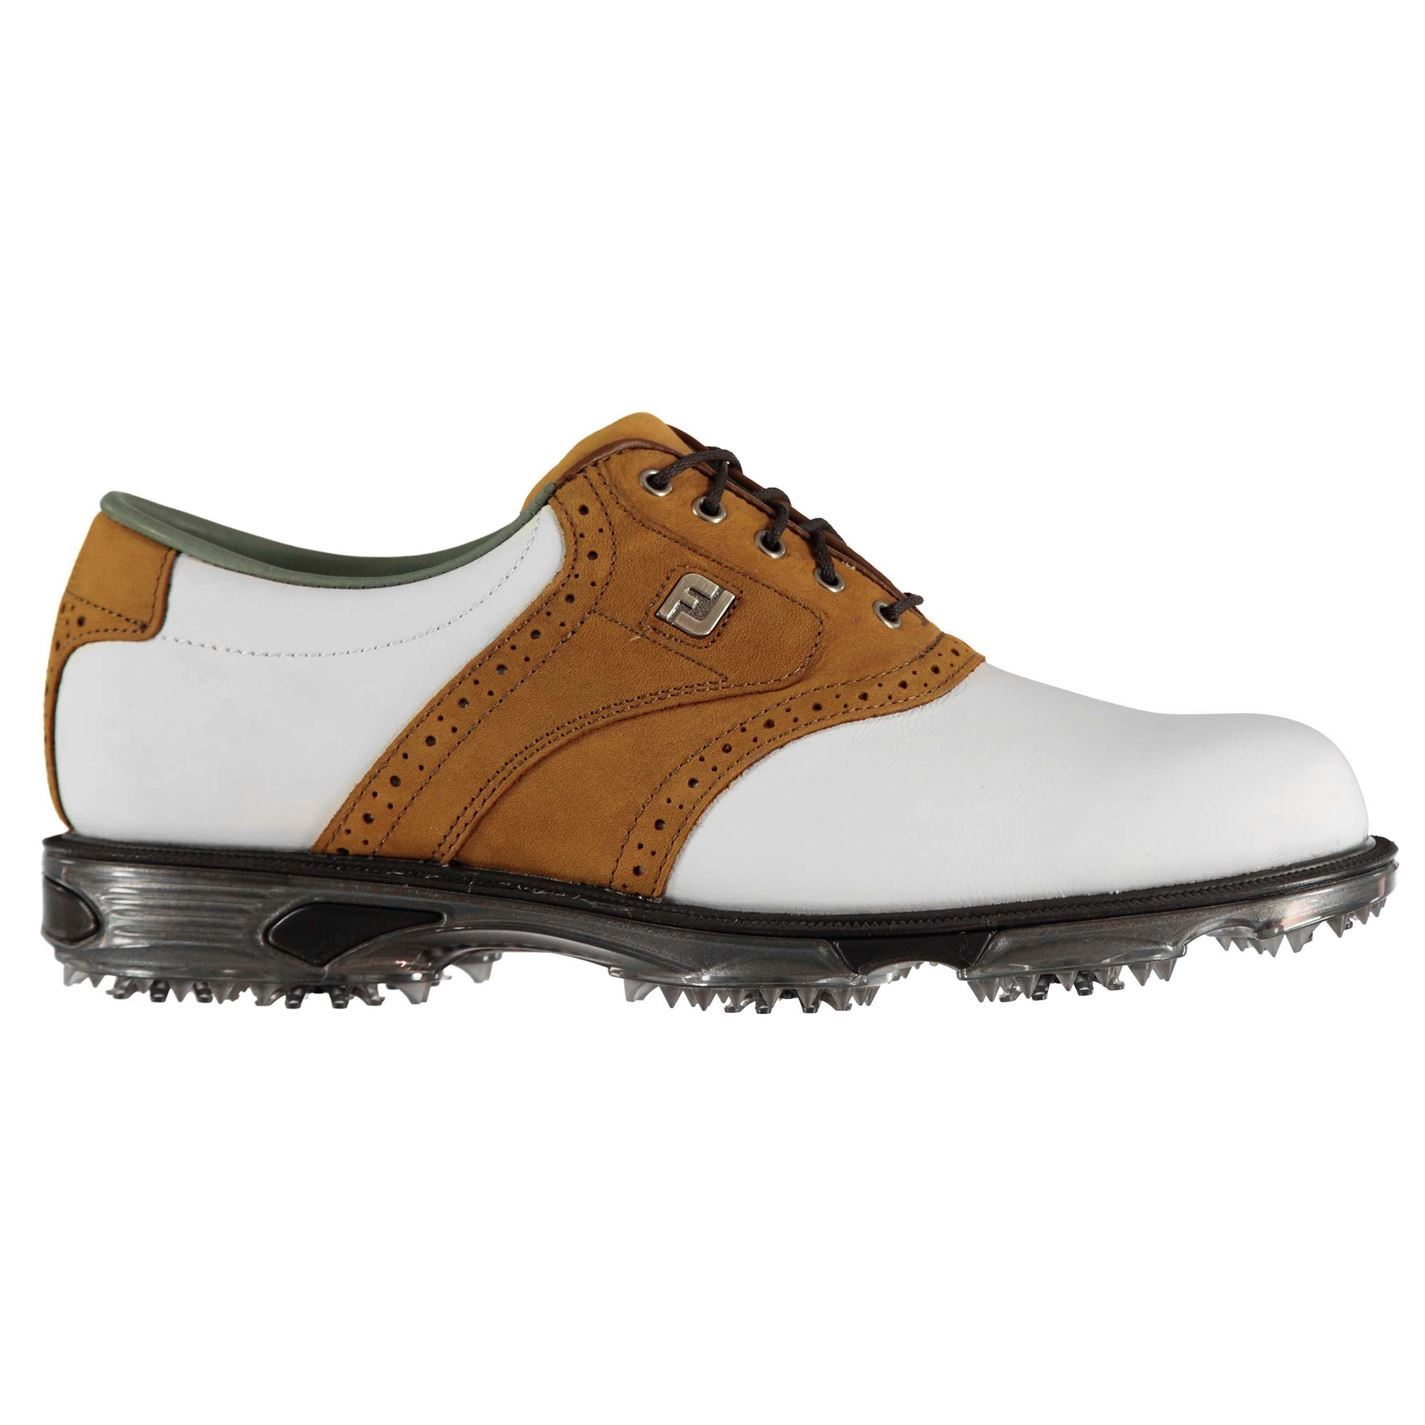 Footjoy-DryJoys-Tour-Golf-Shoes-Mens-Spikes-Footwear thumbnail 12